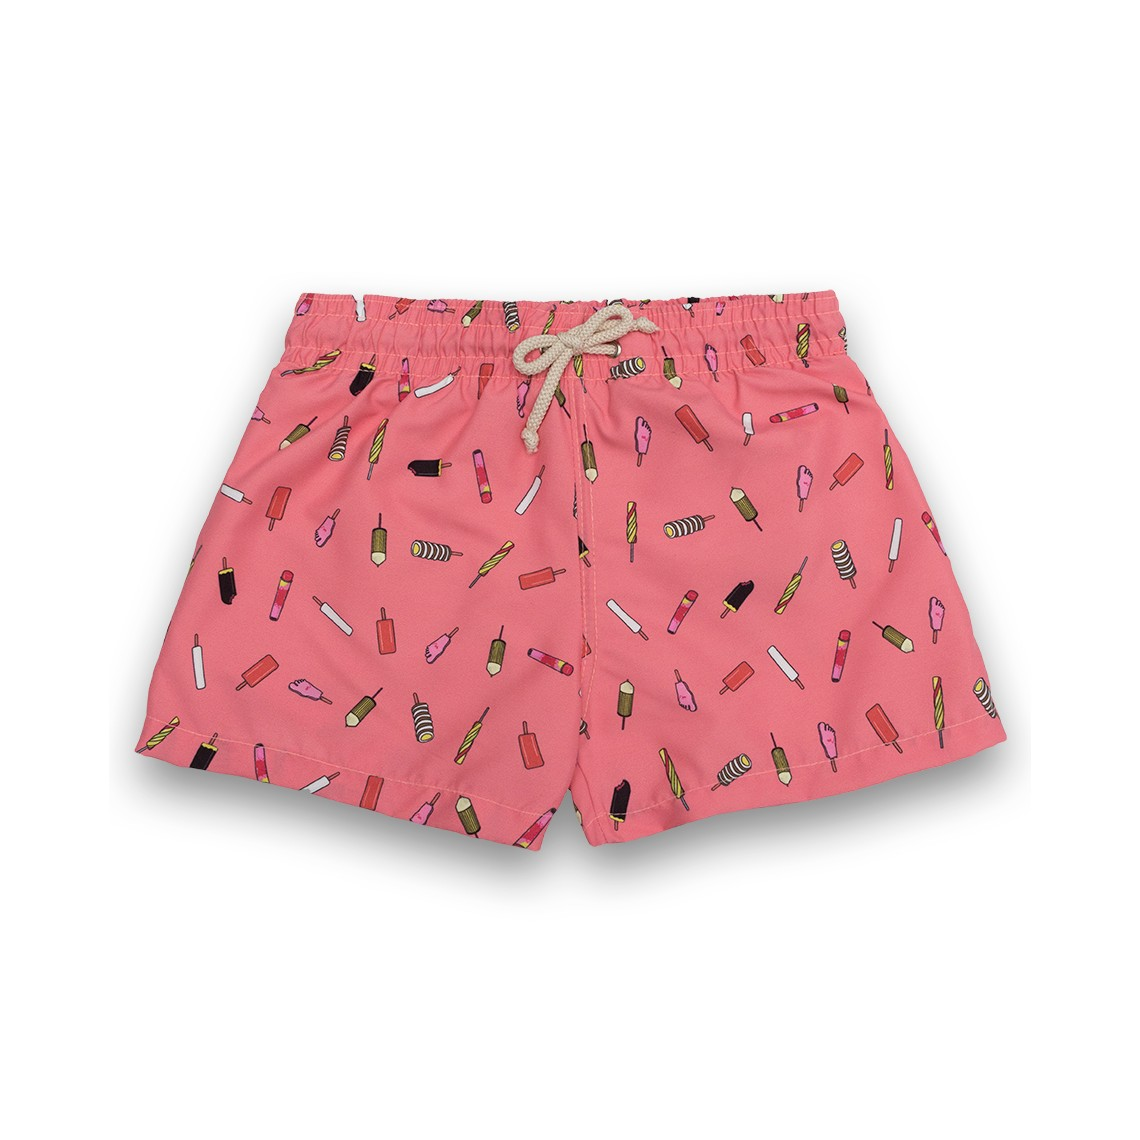 Boy Swim short Pink Ice Creams 2 to 6 years